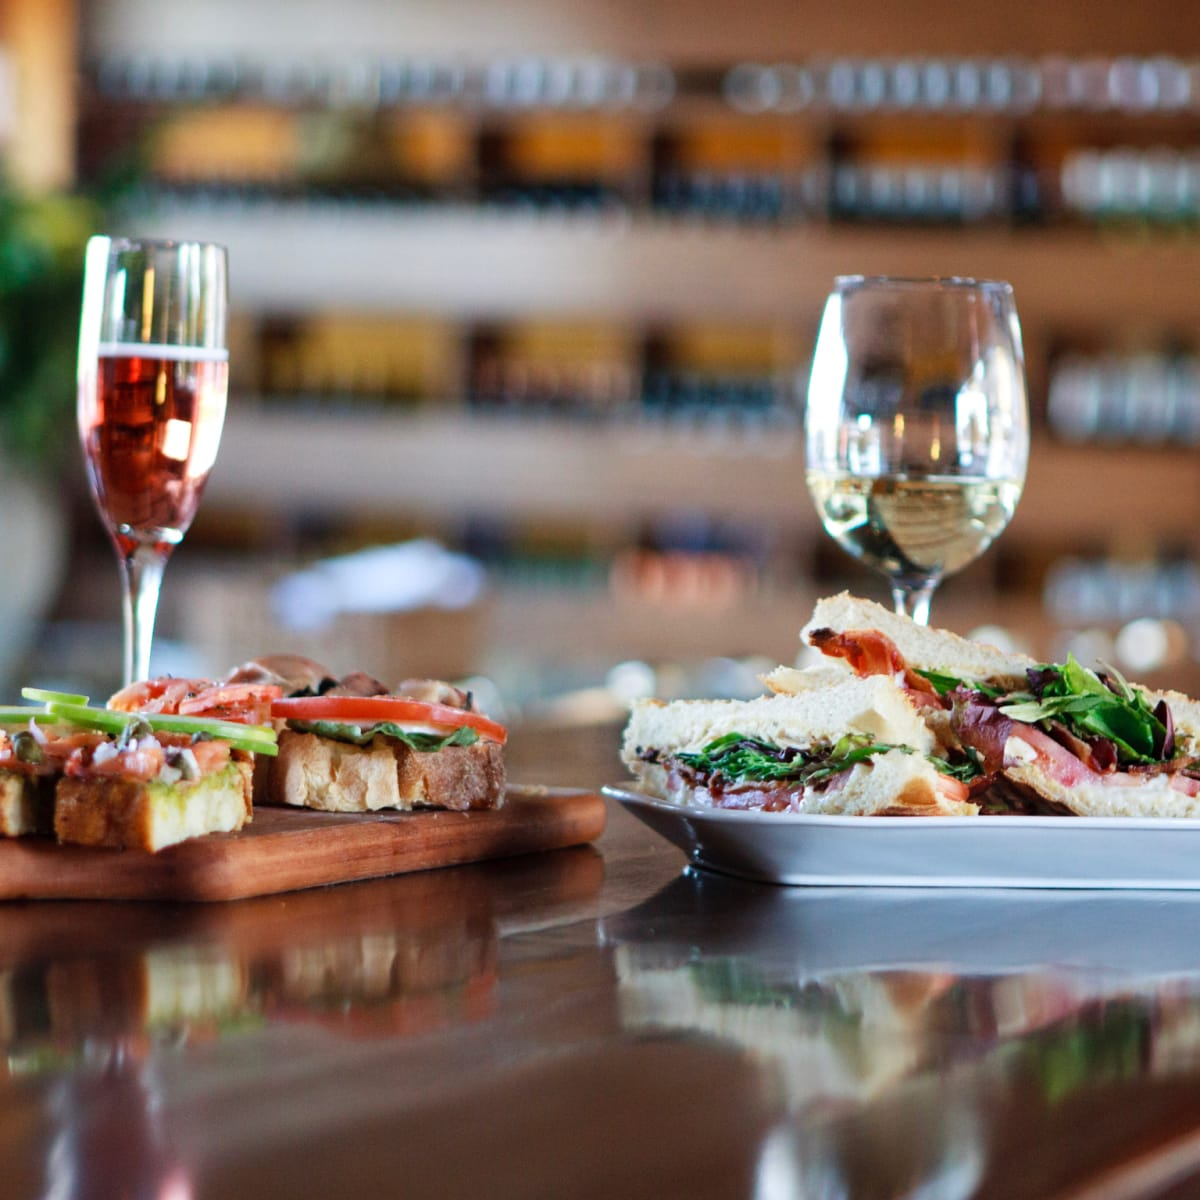 Postino wine and food